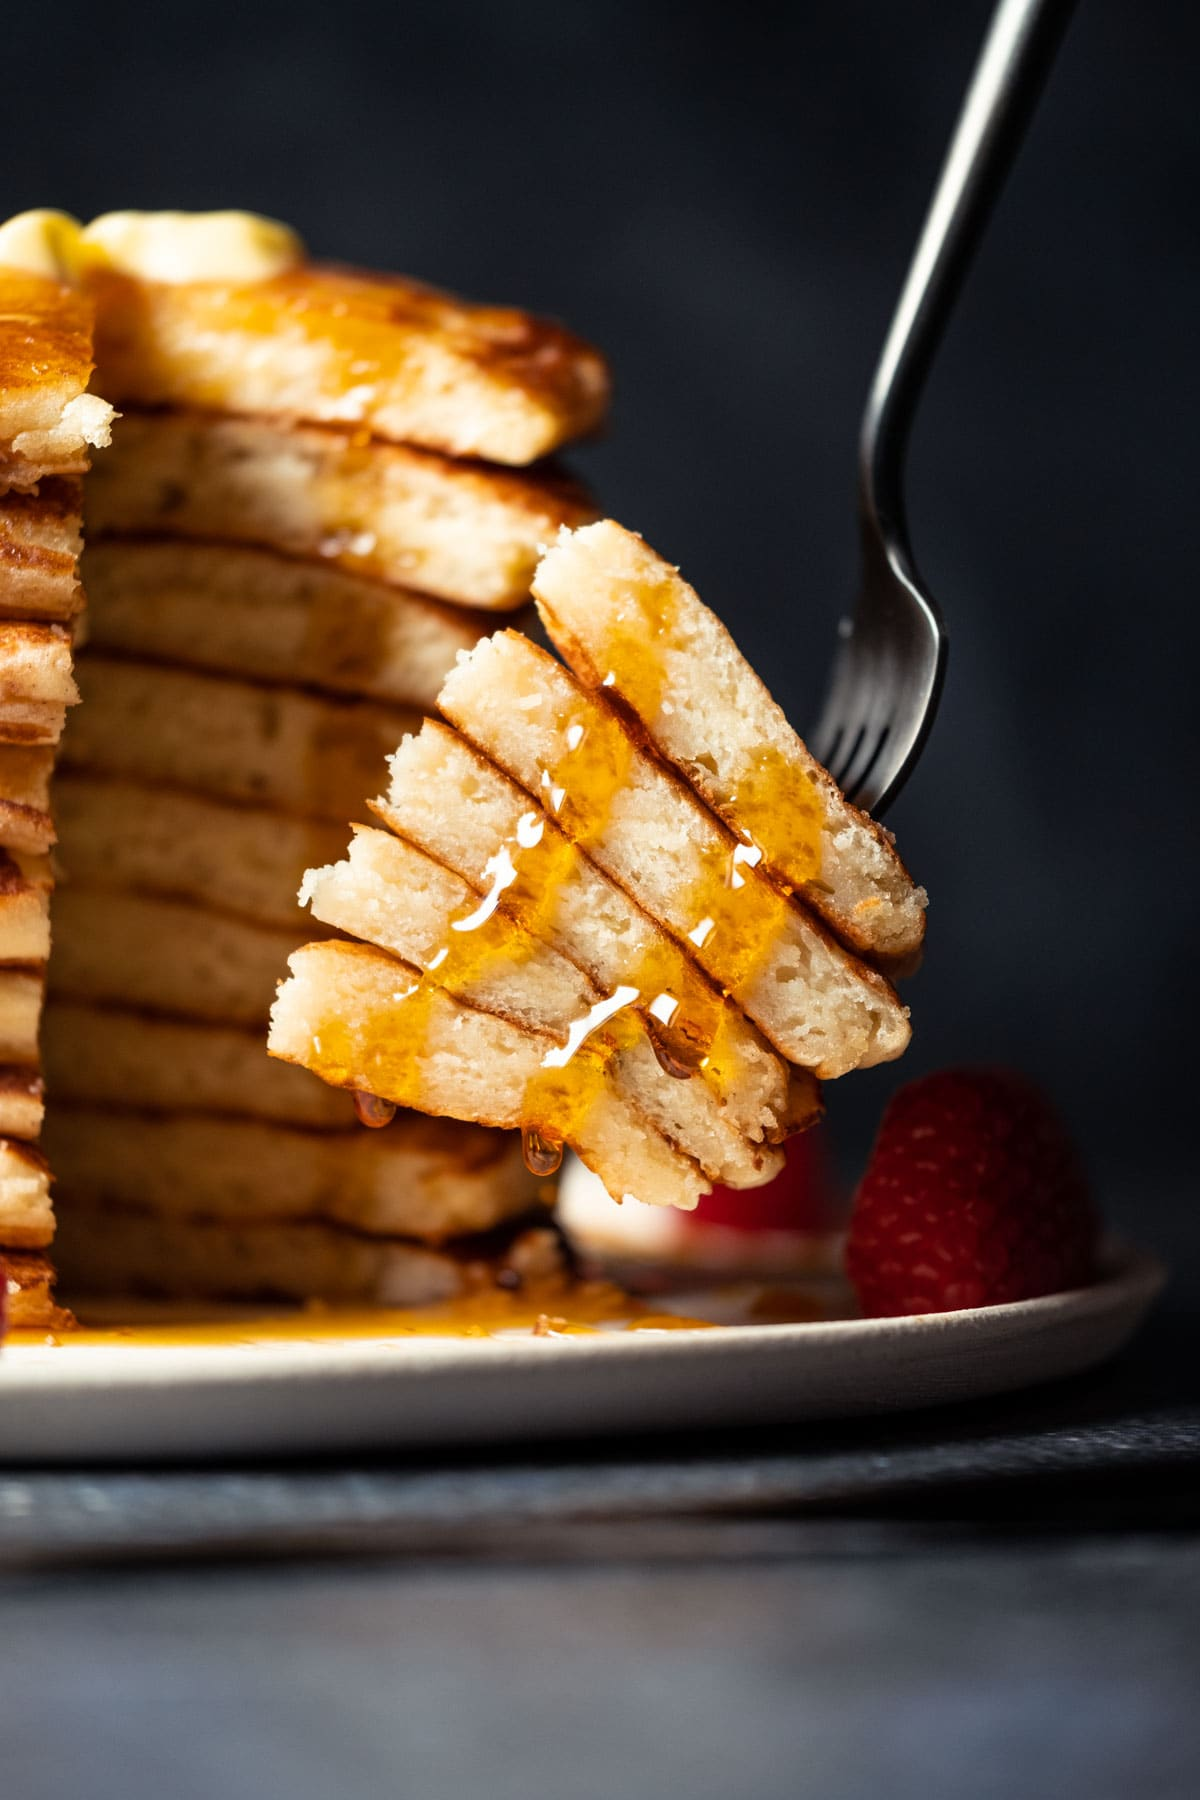 Cut stack of pancakes on a fork.